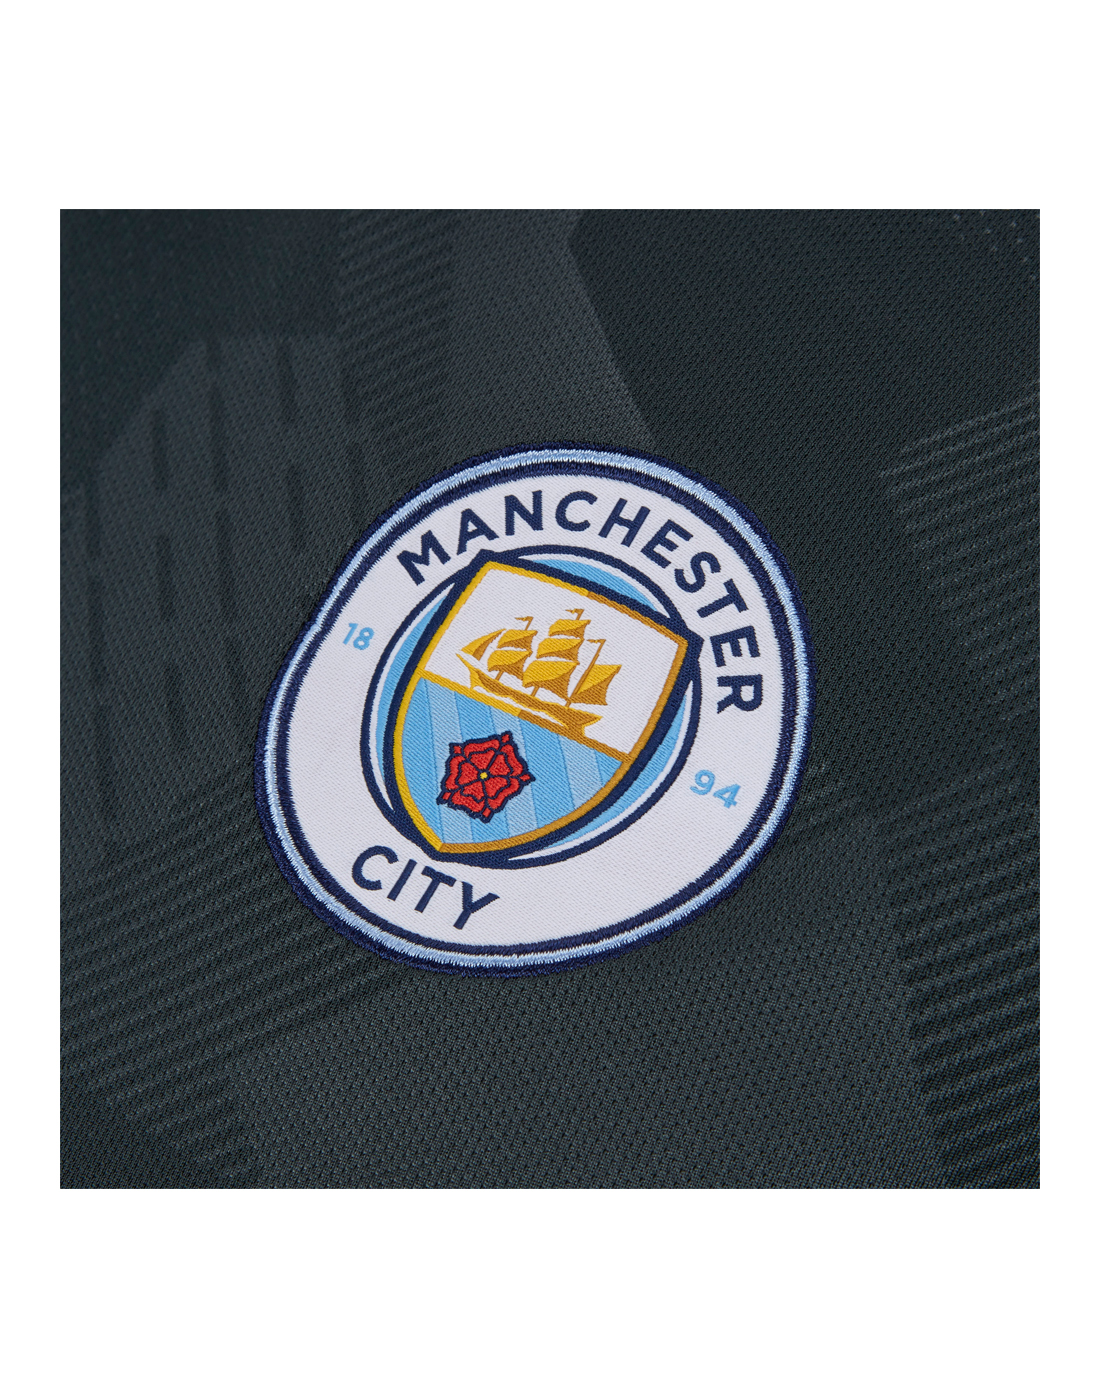 Nike Adult Man City Third 17 18 Jersey Life Style Sports Tendencies Tshirt Fake Ghost Hitam Xxl